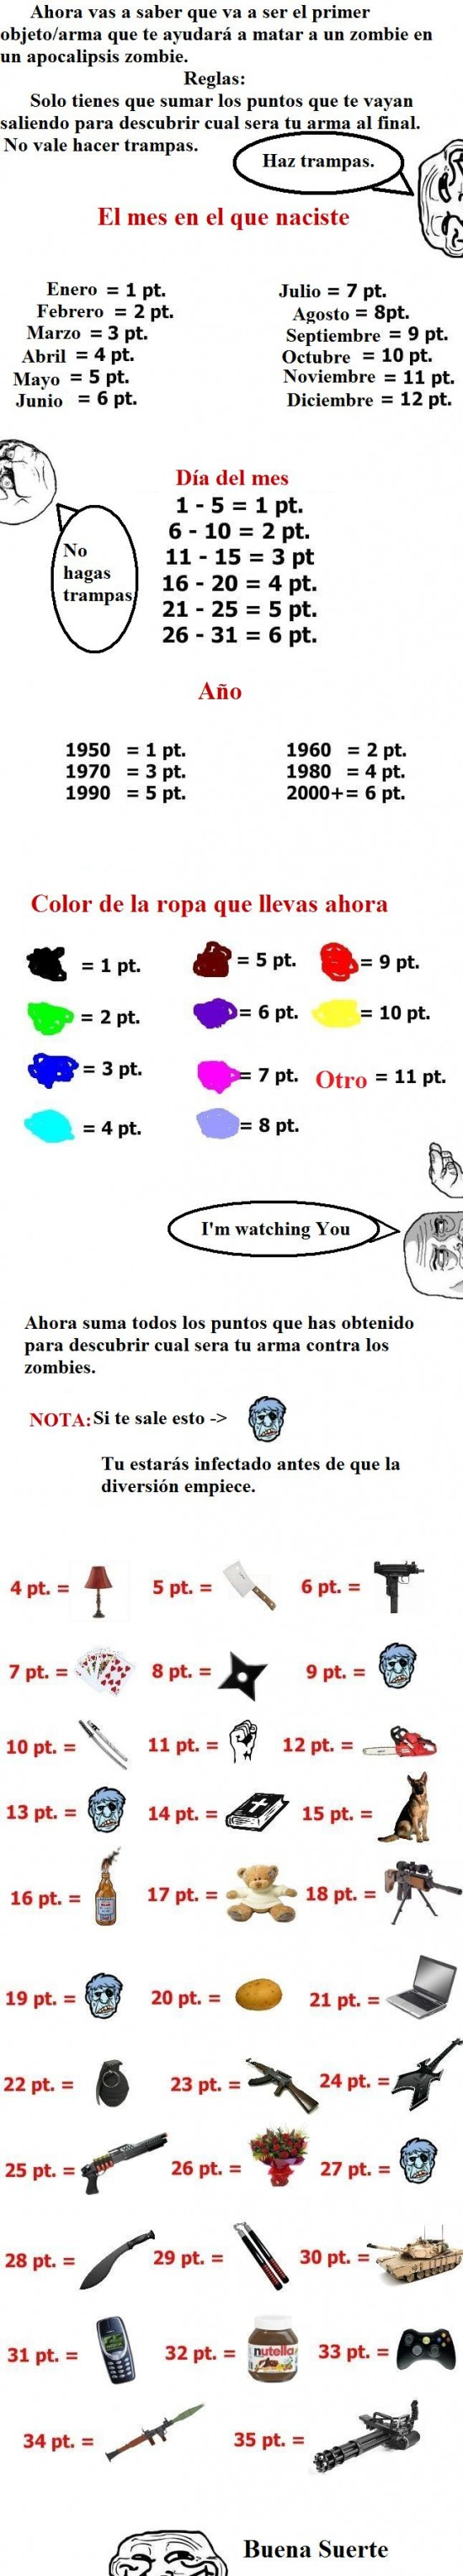 Apocalipsis,I'm watching you,Minigun,No,RPG,Trollface,Zombie